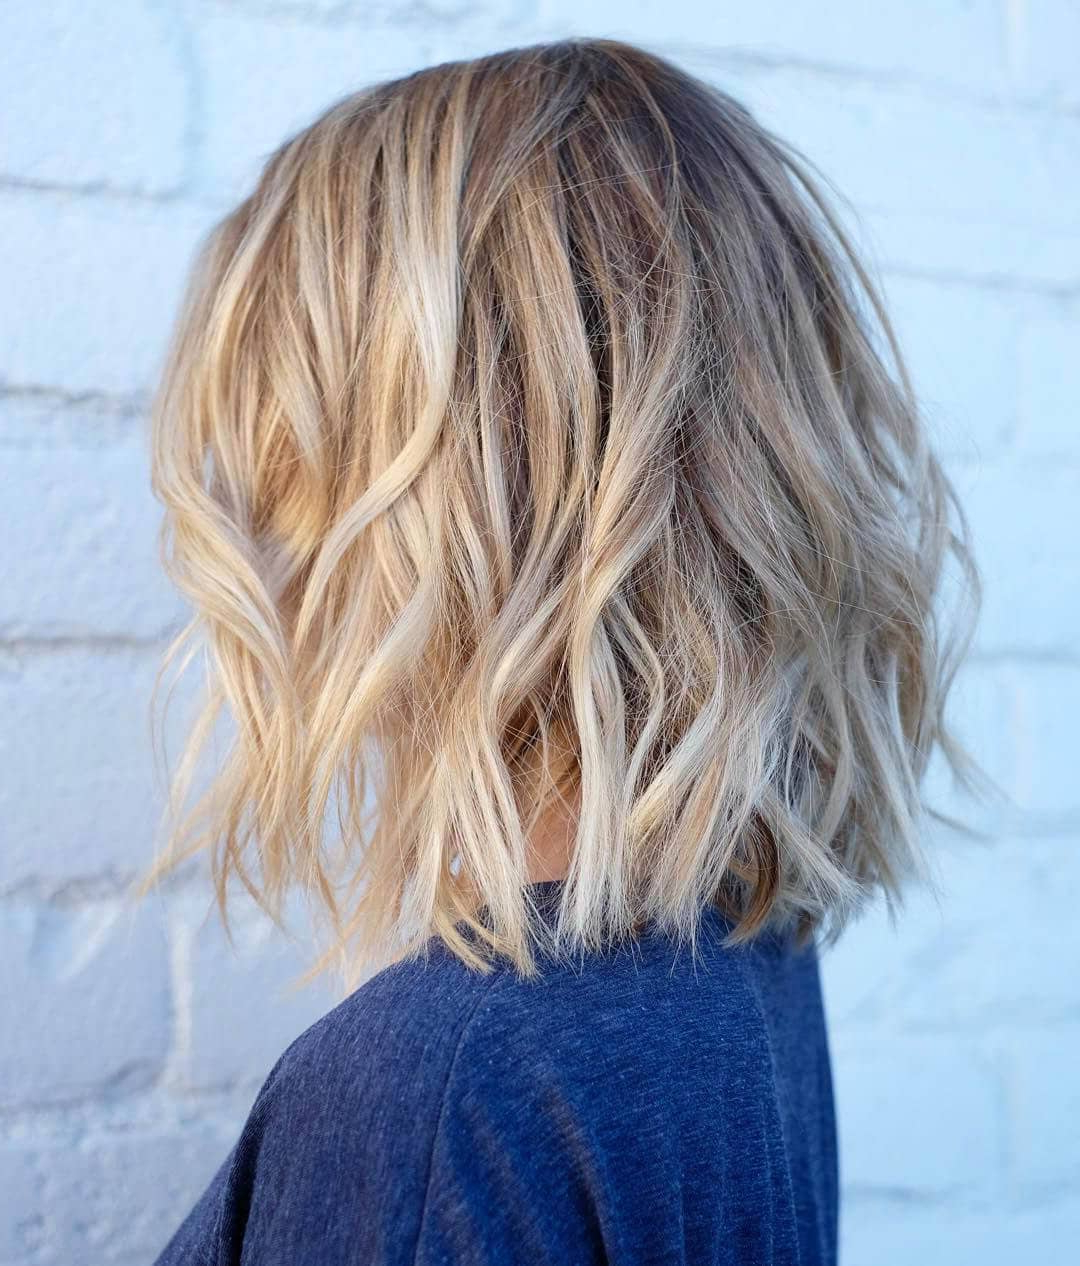 50 Fresh Short Blonde Hair Ideas To Update Your Style In 2018 With Regard To Choppy Wispy Blonde Balayage Bob Hairstyles (View 9 of 20)